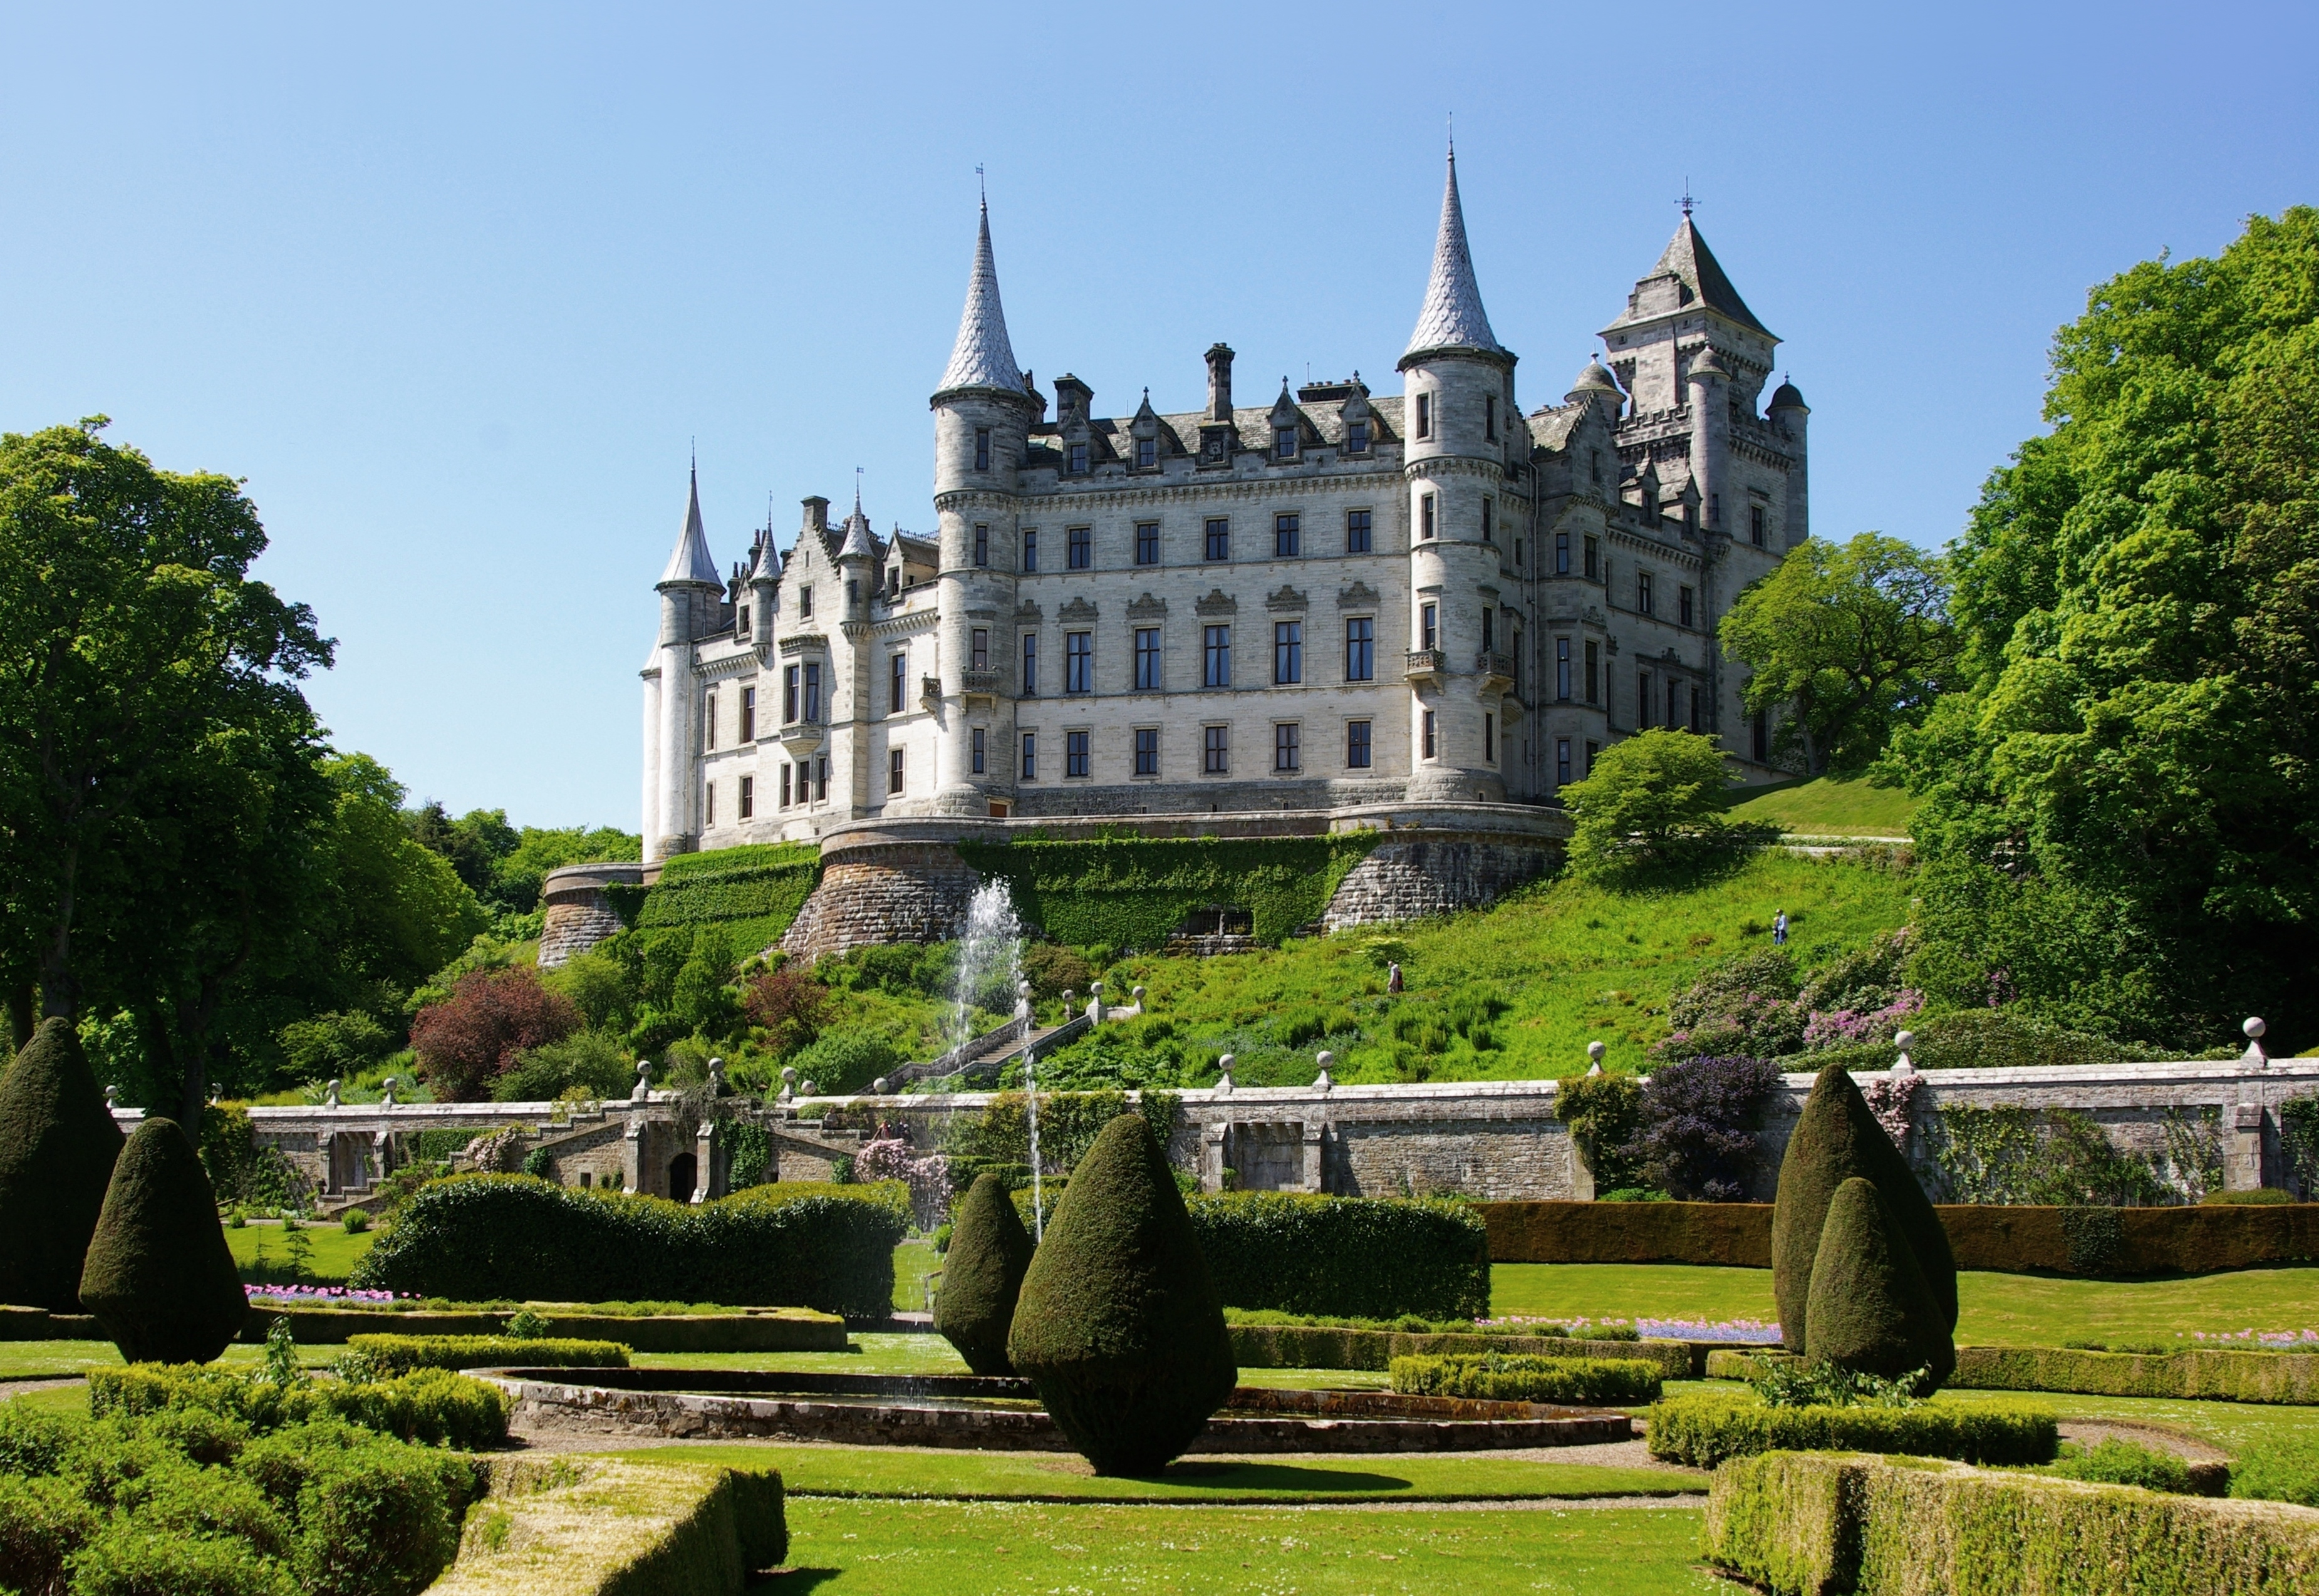 The Architectural History of Scotland